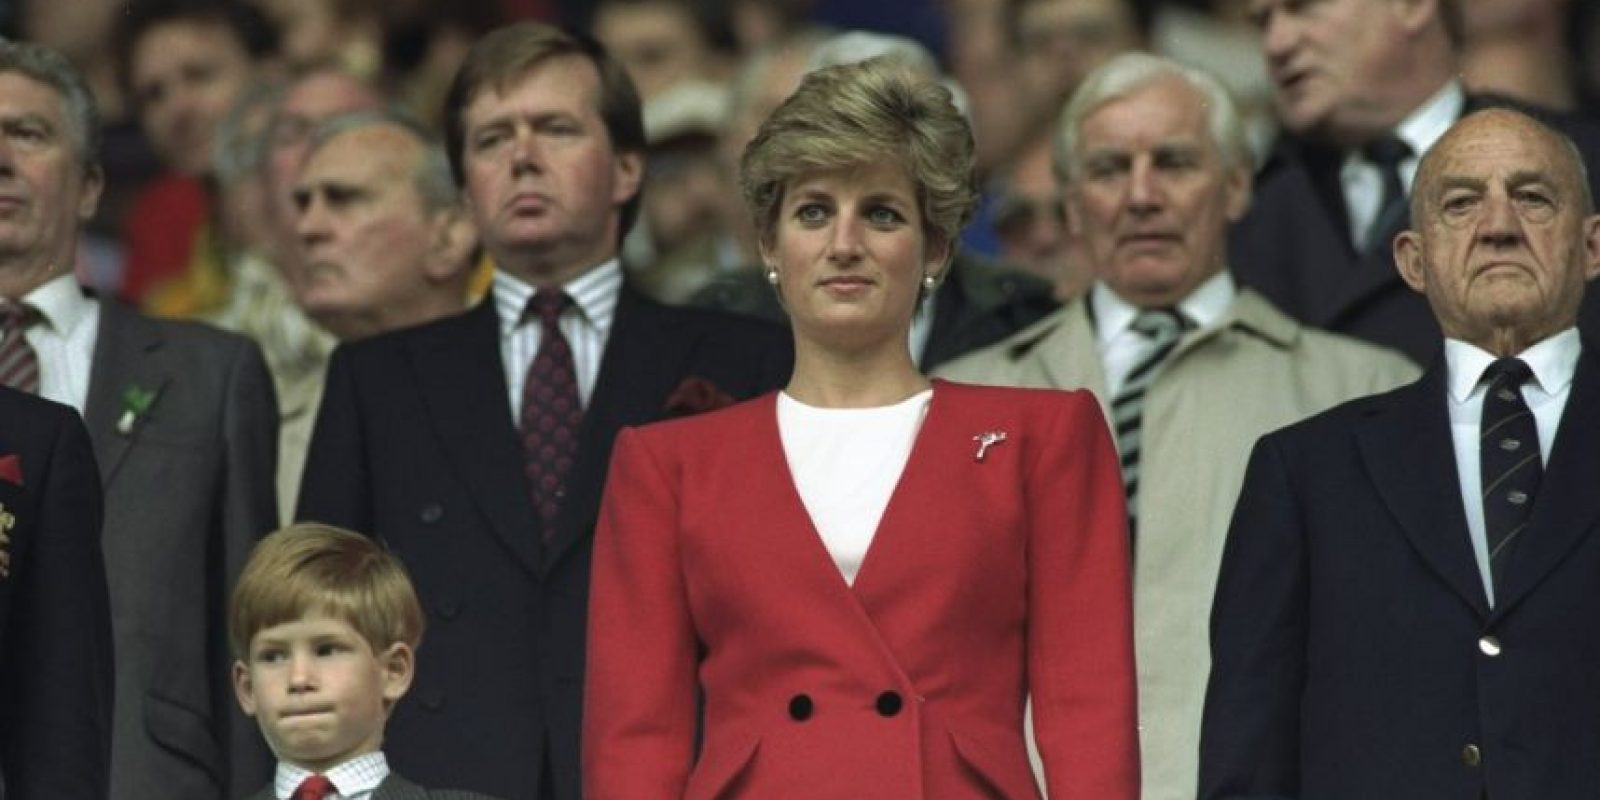 4. Princesa Diana Foto: Getty Images